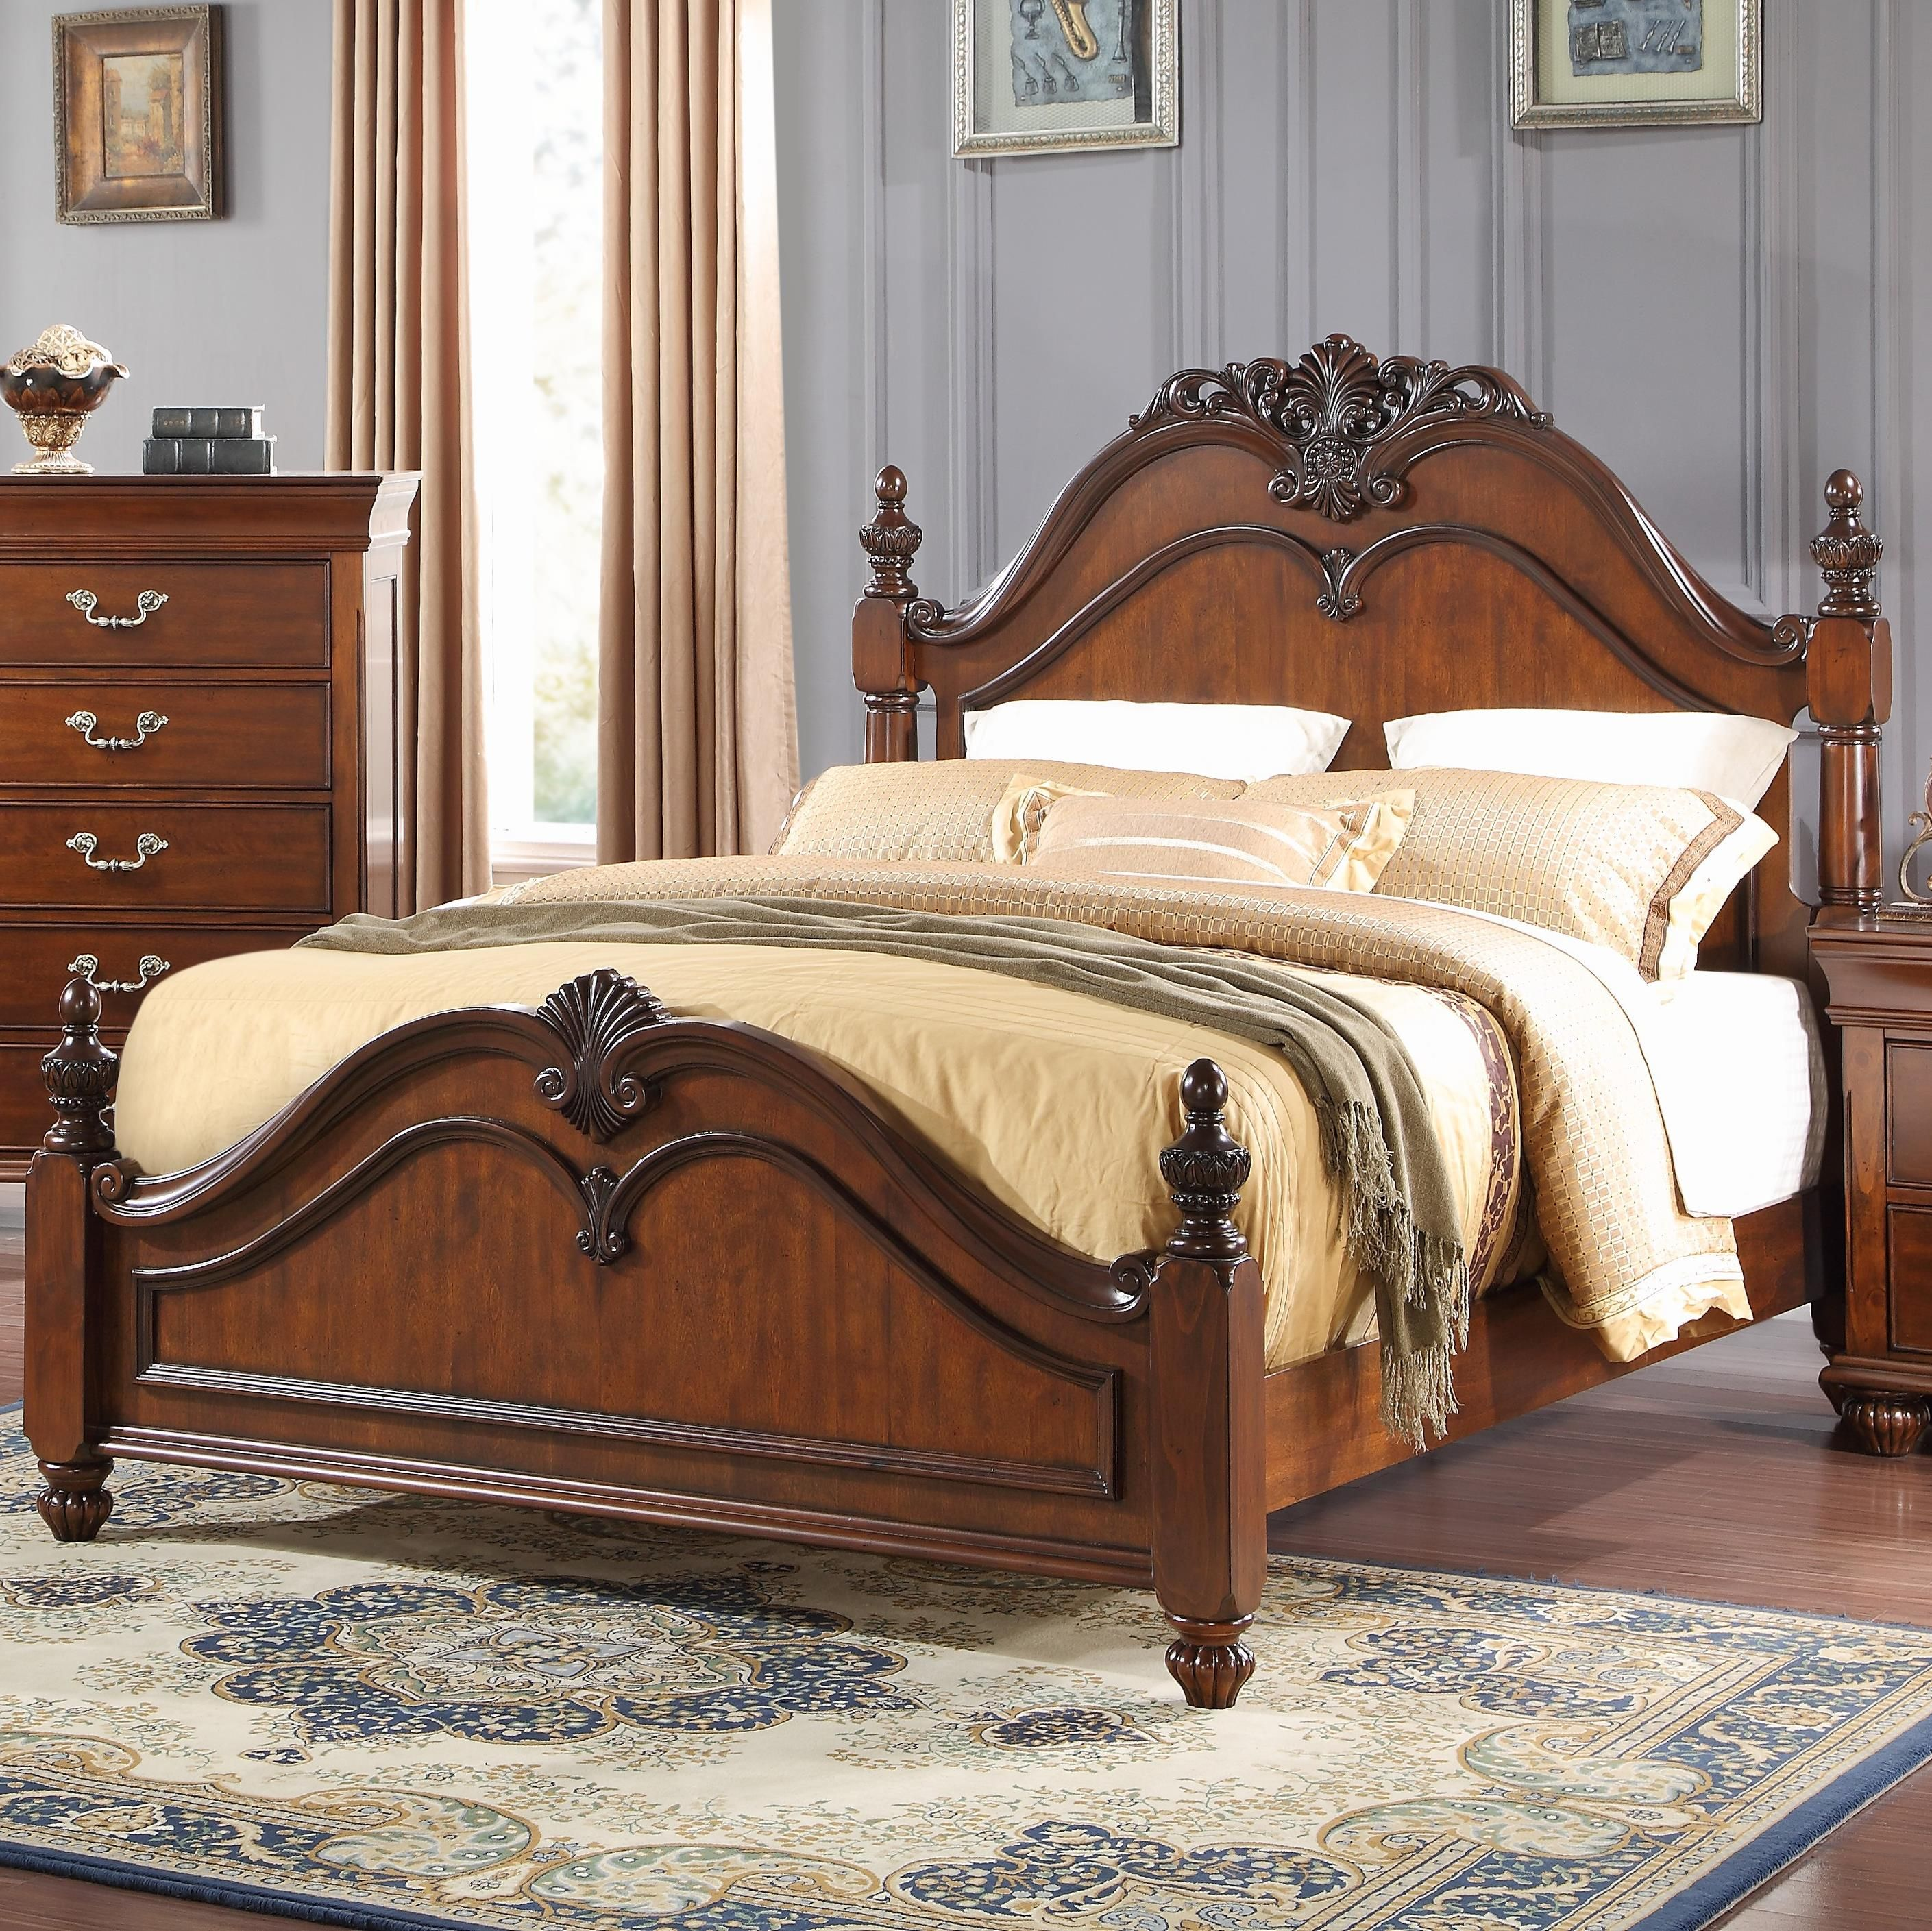 The Jaquelyn Twin Poster Bed With Carved Details By New Classic At Royal Furniture In The Memphis Jackson Tennessee Southaven Furniture Bed Design Panel Bed